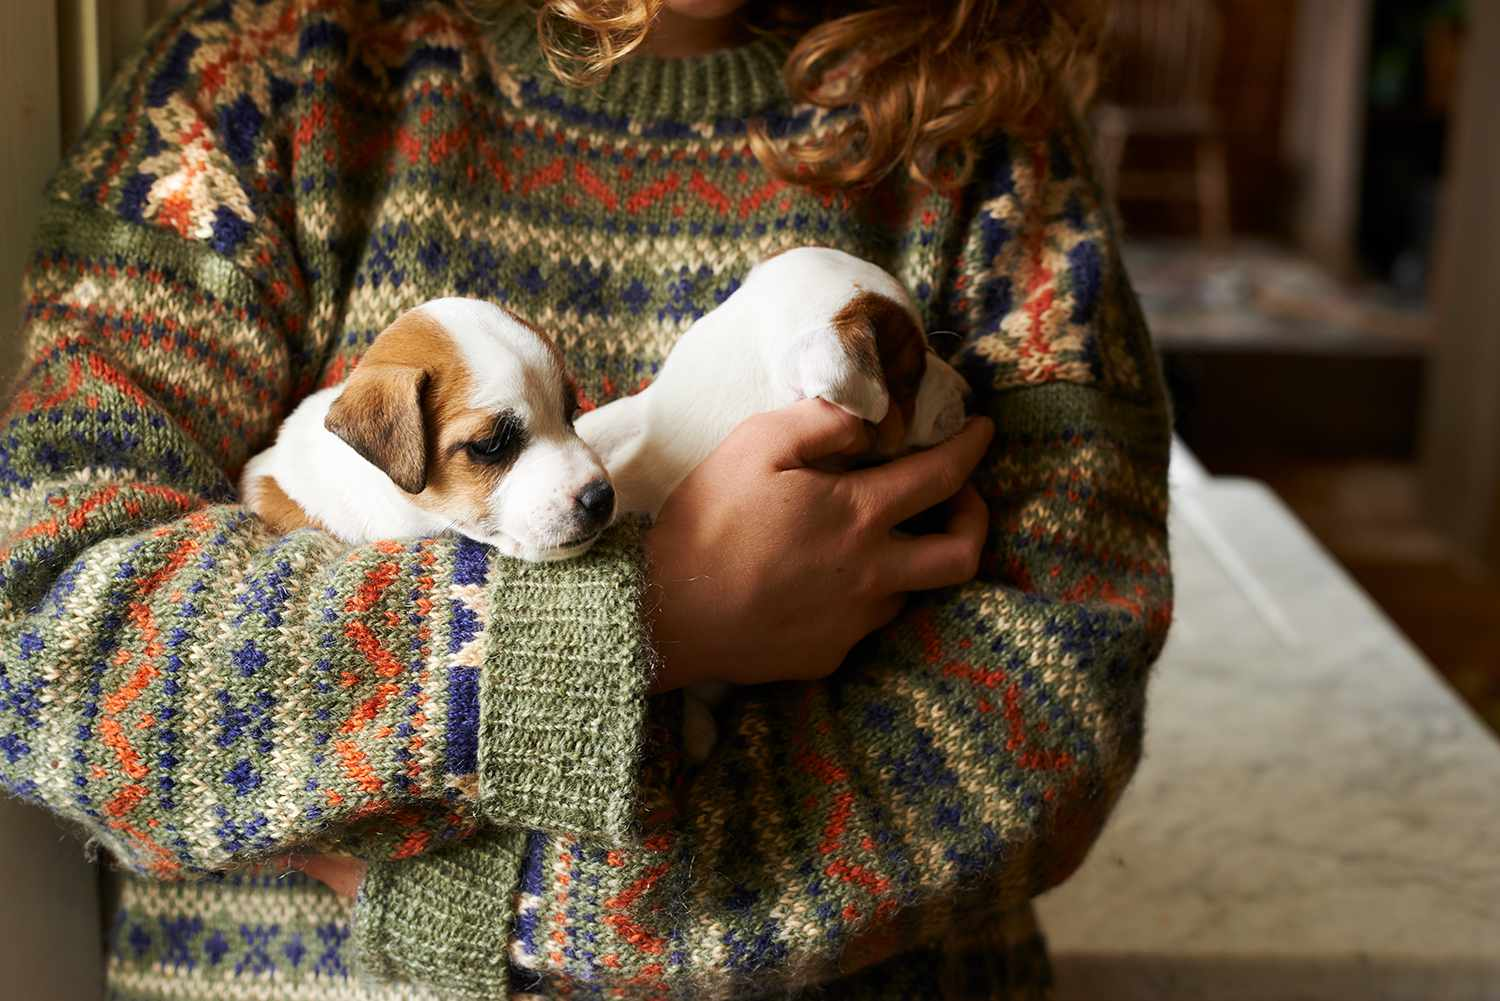 Girl in sweater holding puppies